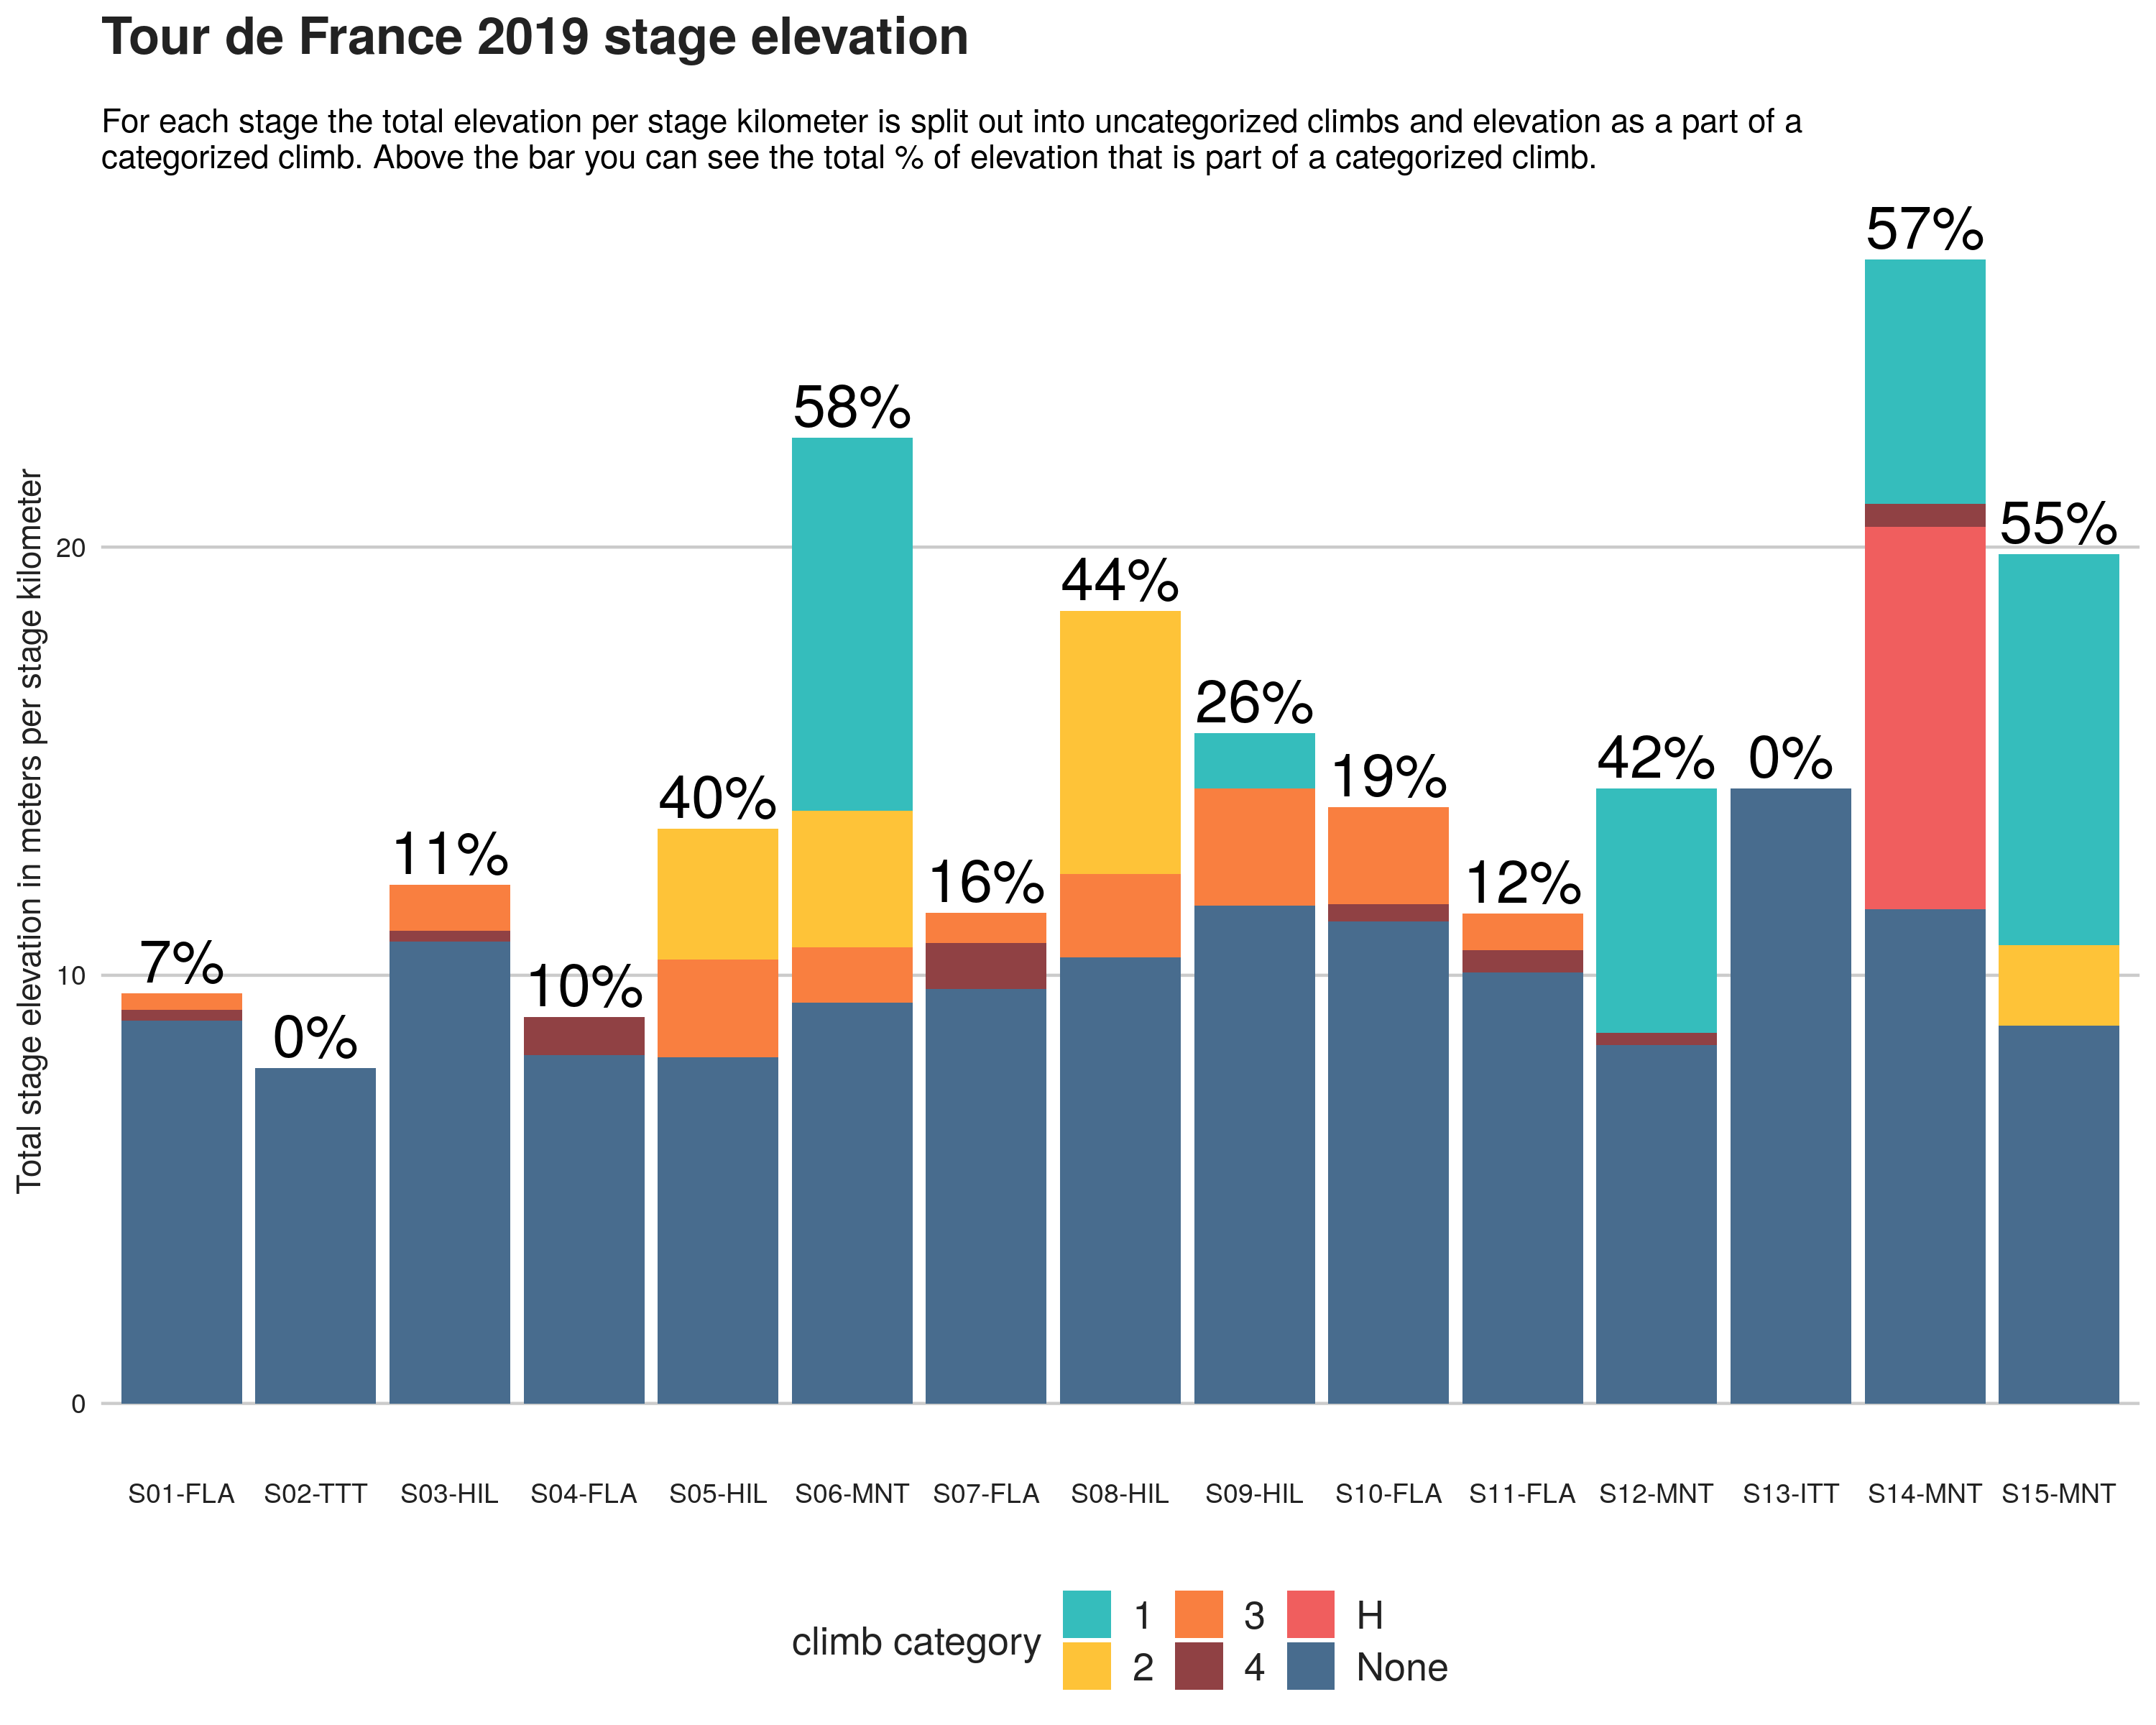 Tour de France 2019 stage elevation per stage kilometer and the percentage of elevation that is categorized.